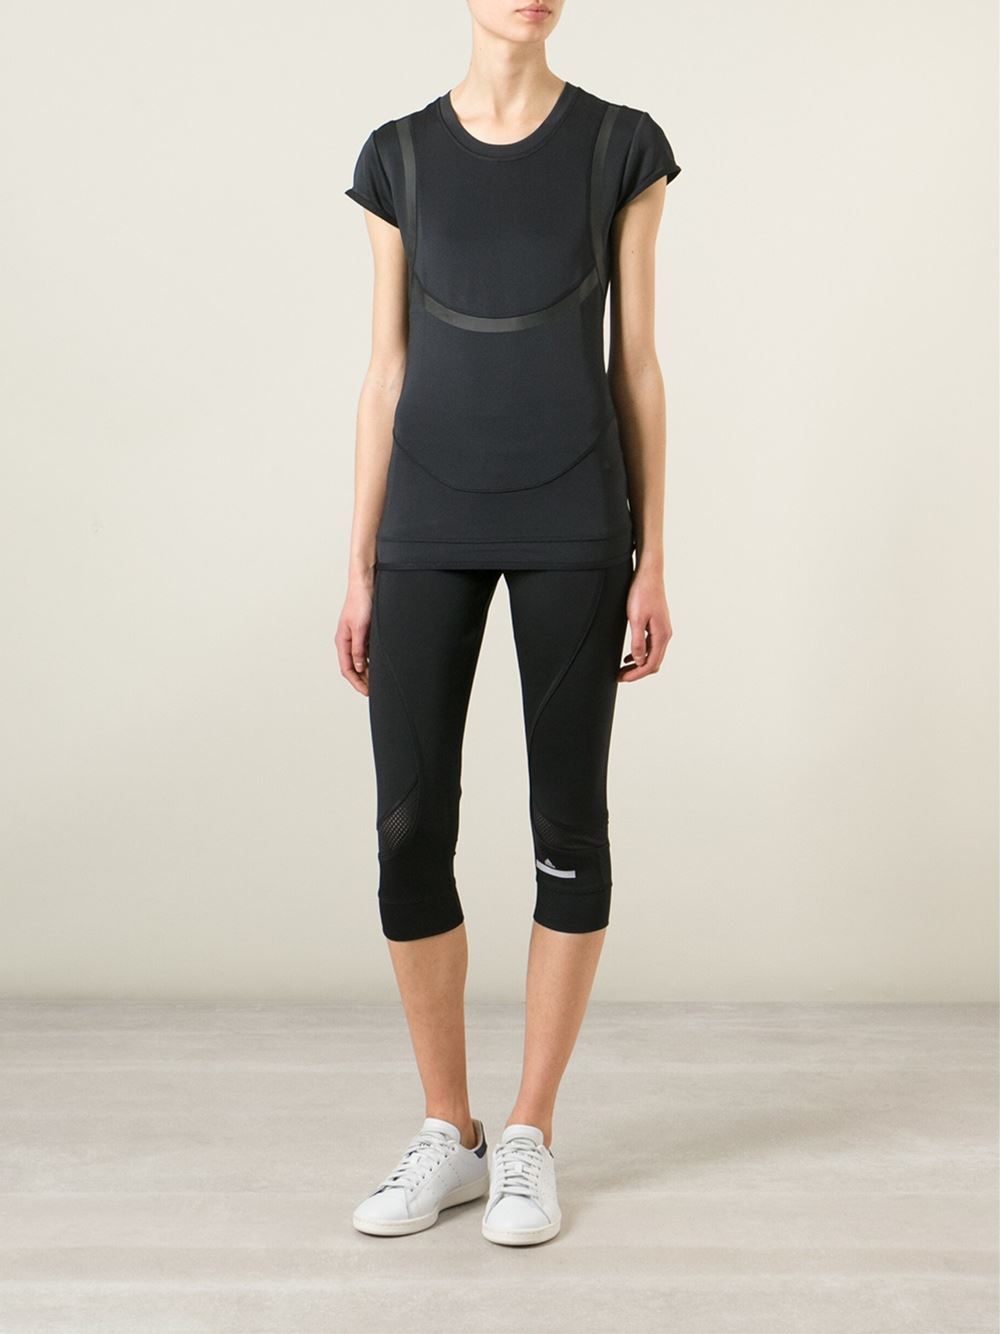 adidas by stella mccartney mesh insert cropped running. Black Bedroom Furniture Sets. Home Design Ideas